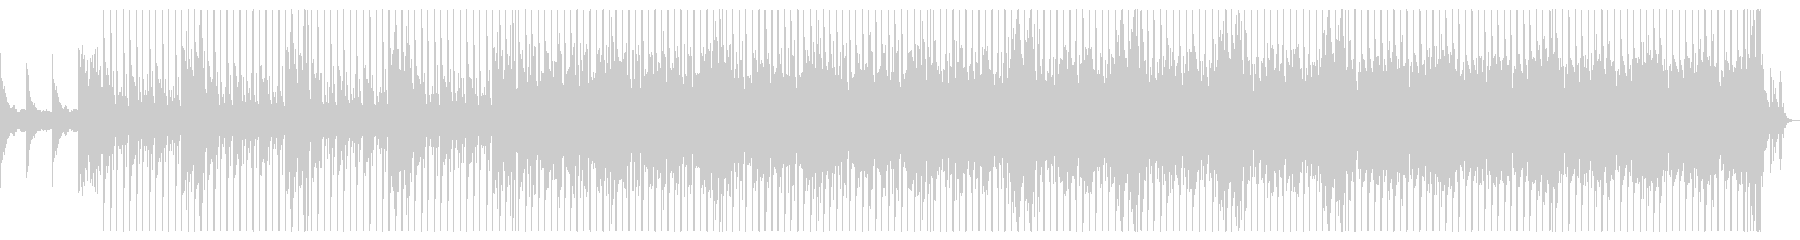 Everyday refreshing and relaxing everyday pop songs's unreproduced waveform